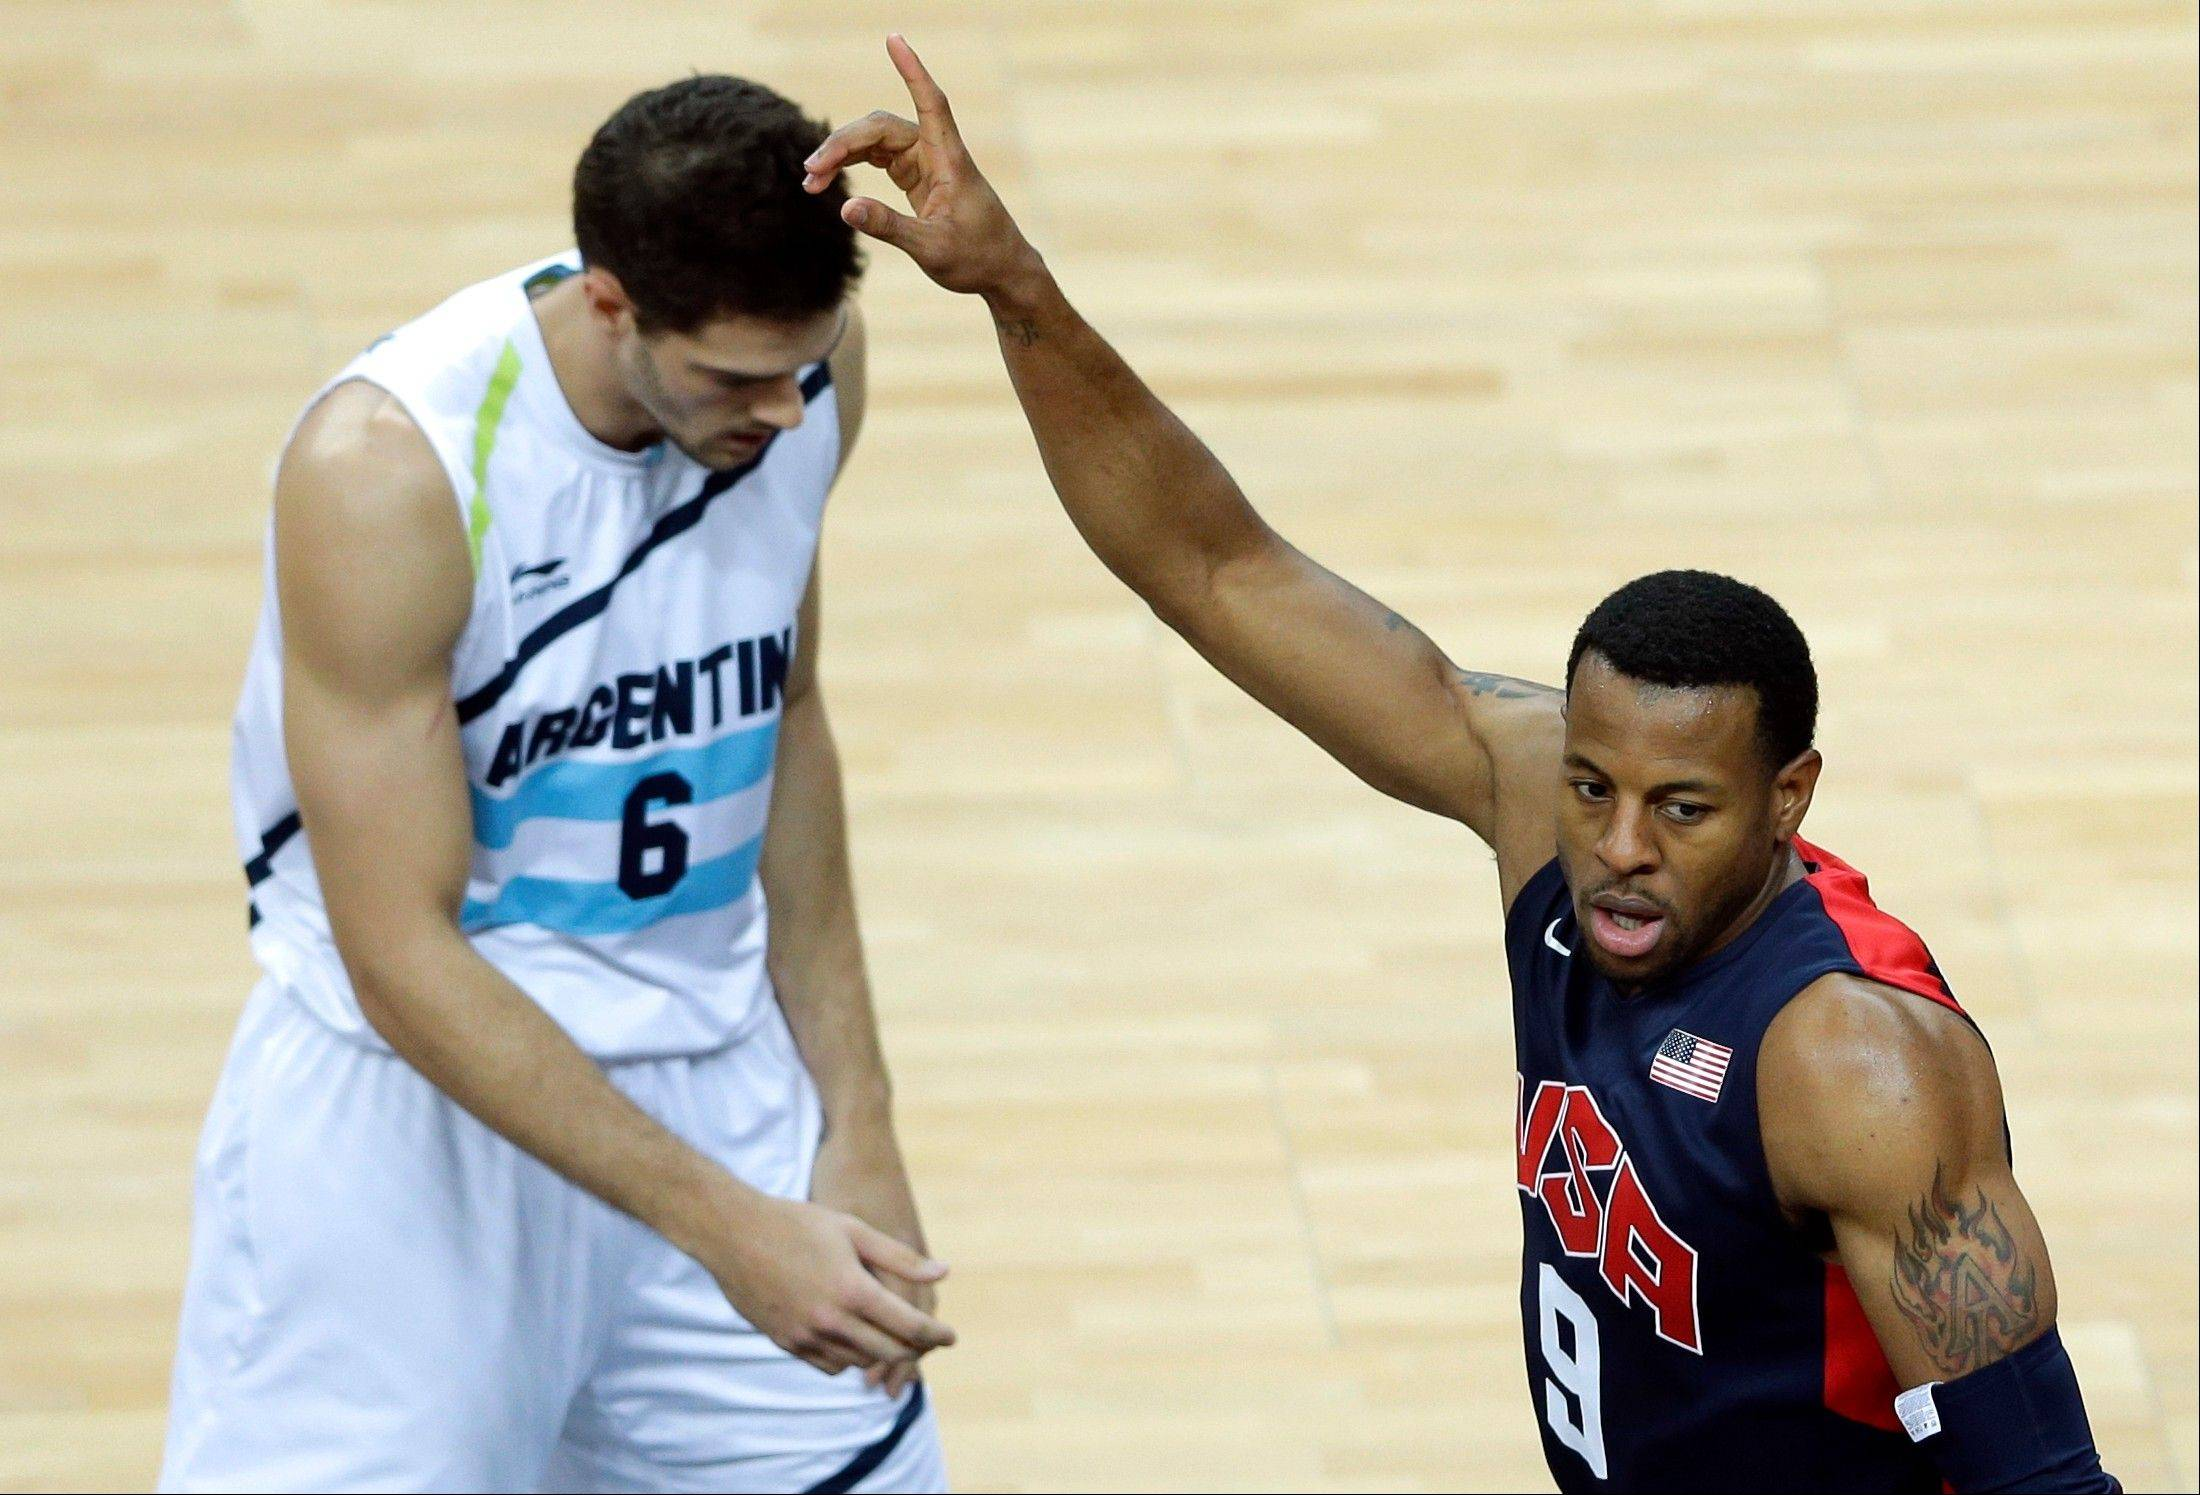 The United States' Andre Iguodala, right, celebrates Monday next to Argentina's Marcos Mata, left, in the second half.